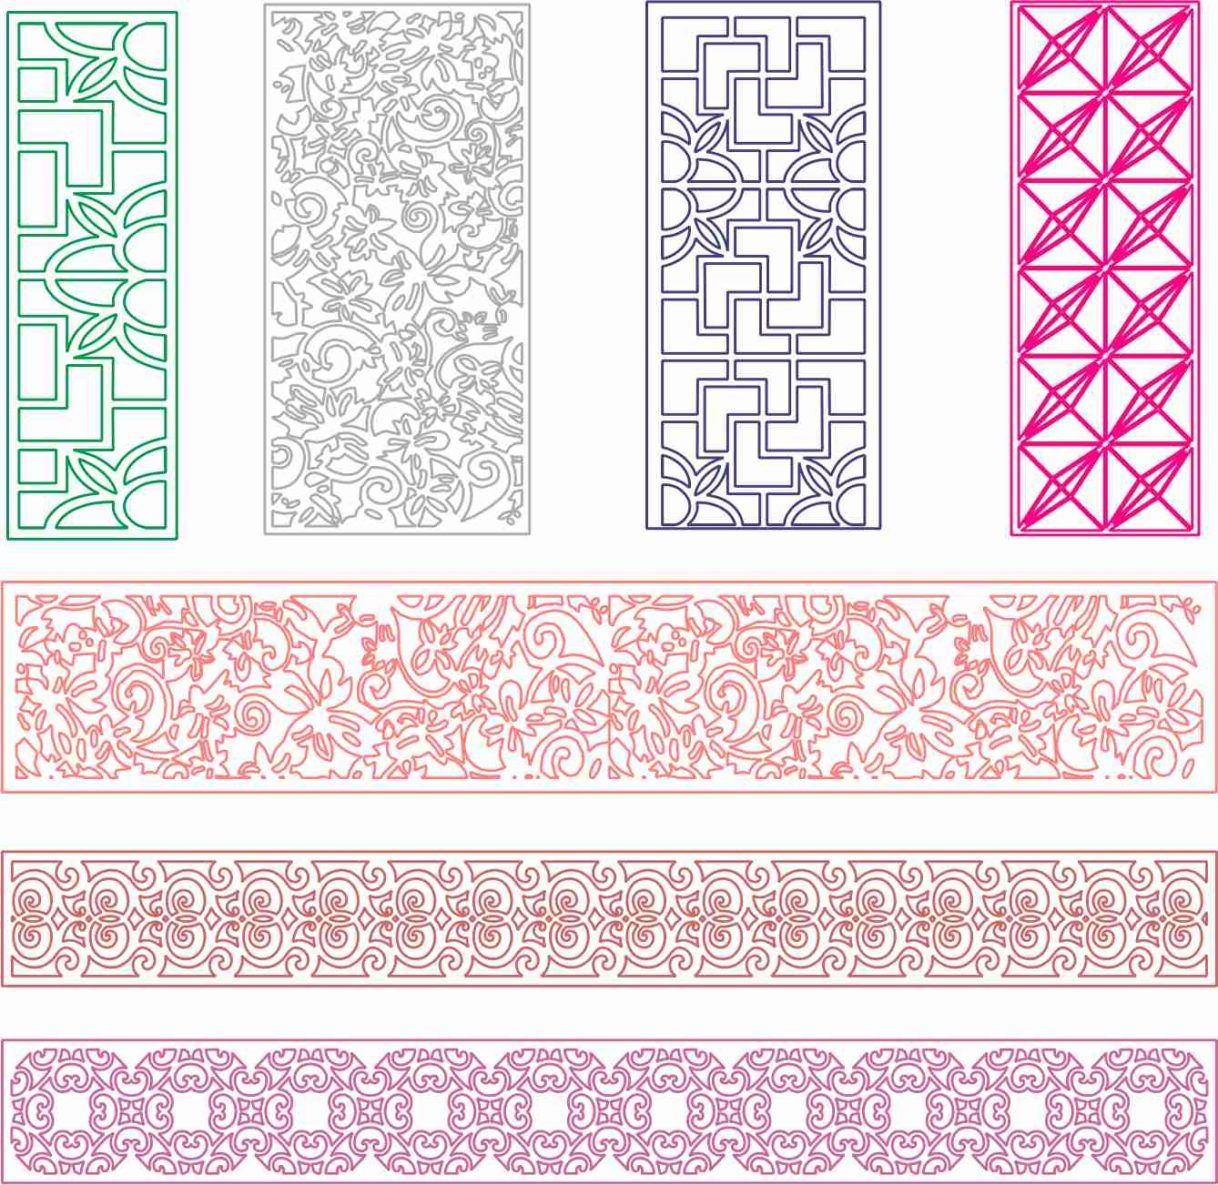 7 patterns dxf for cnc free in 2020 Cnc, Dxf, Free